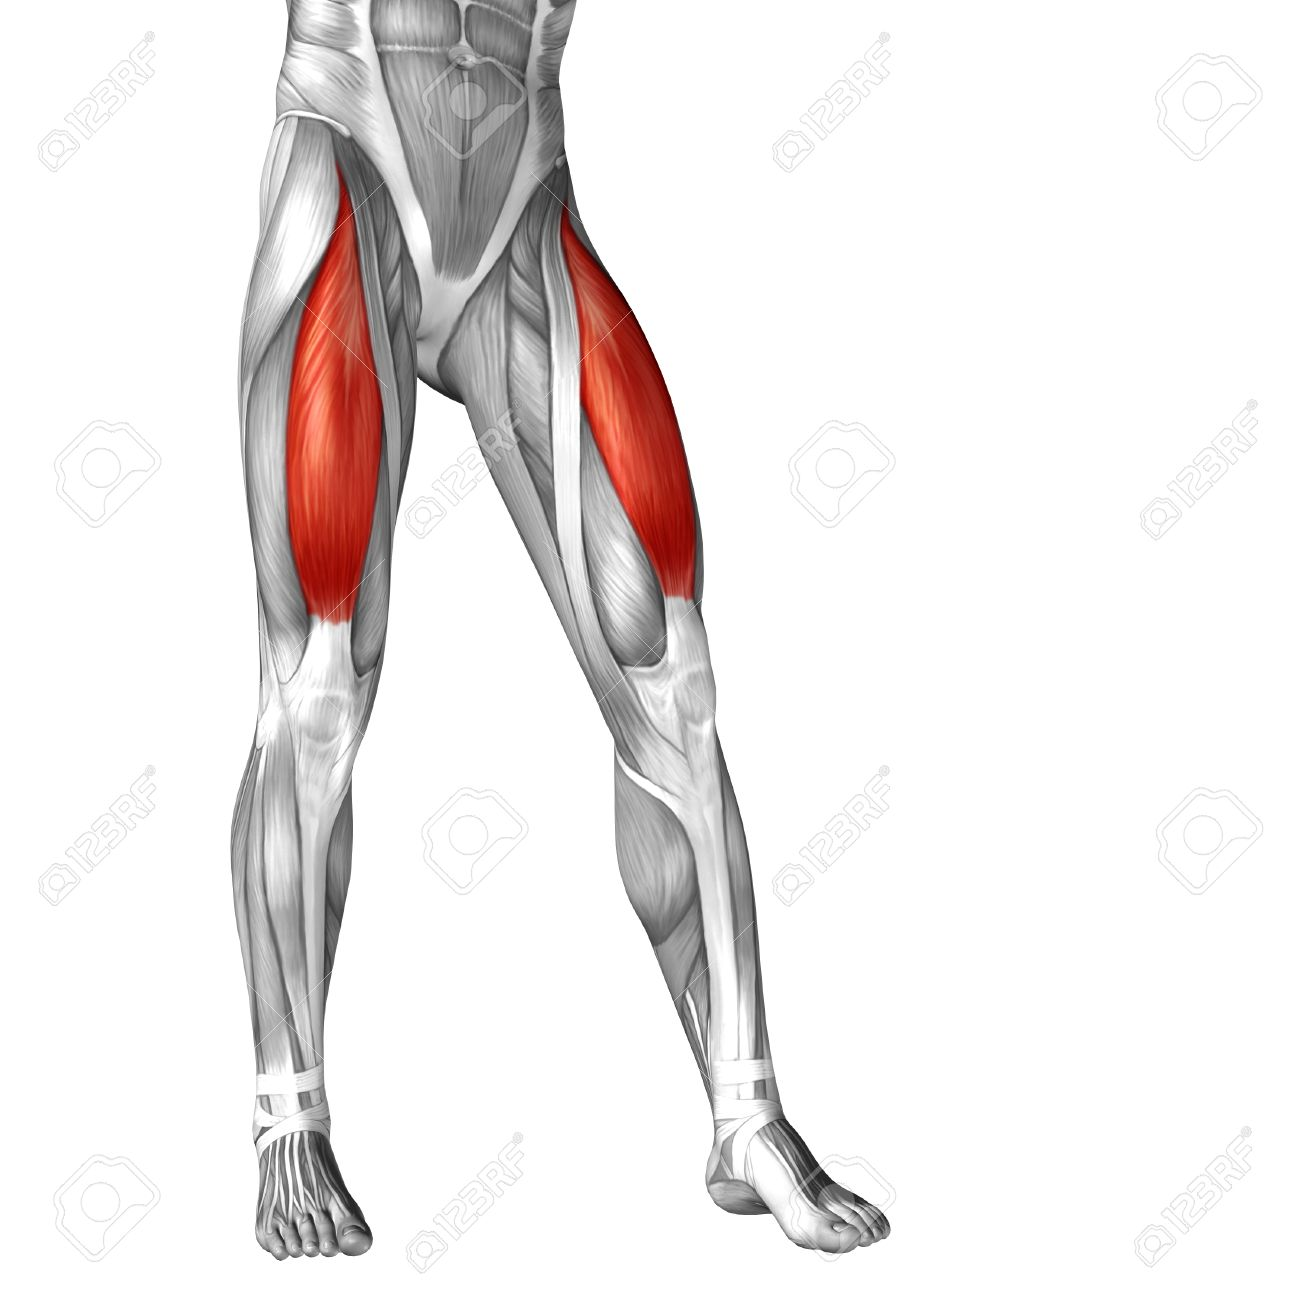 Upper Thigh Muscle Anatomy Choice Image - human body anatomy